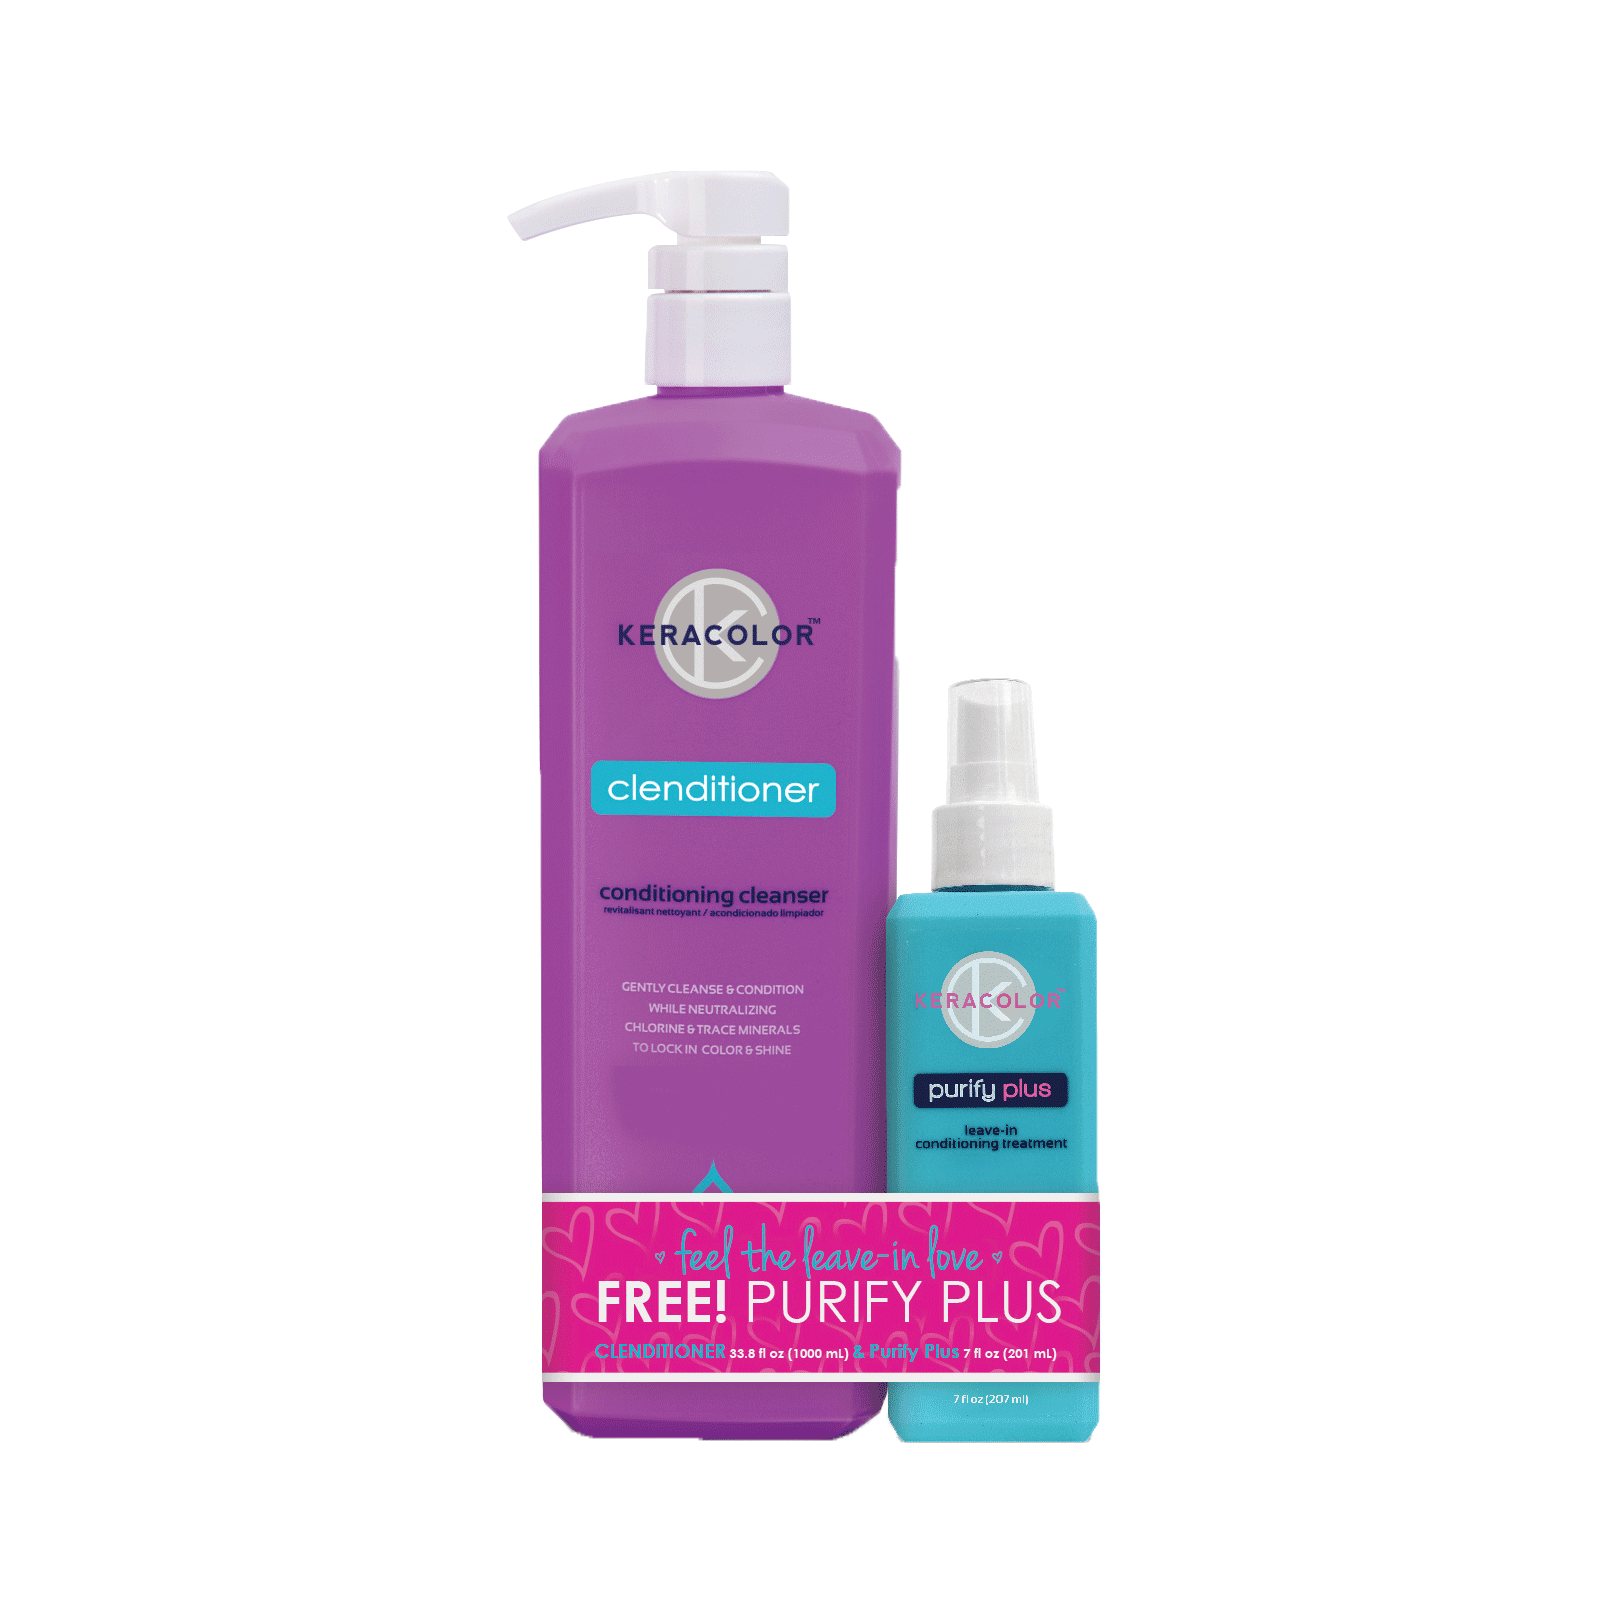 Clenditioner Liter, Purify Plus Leave-In Spray